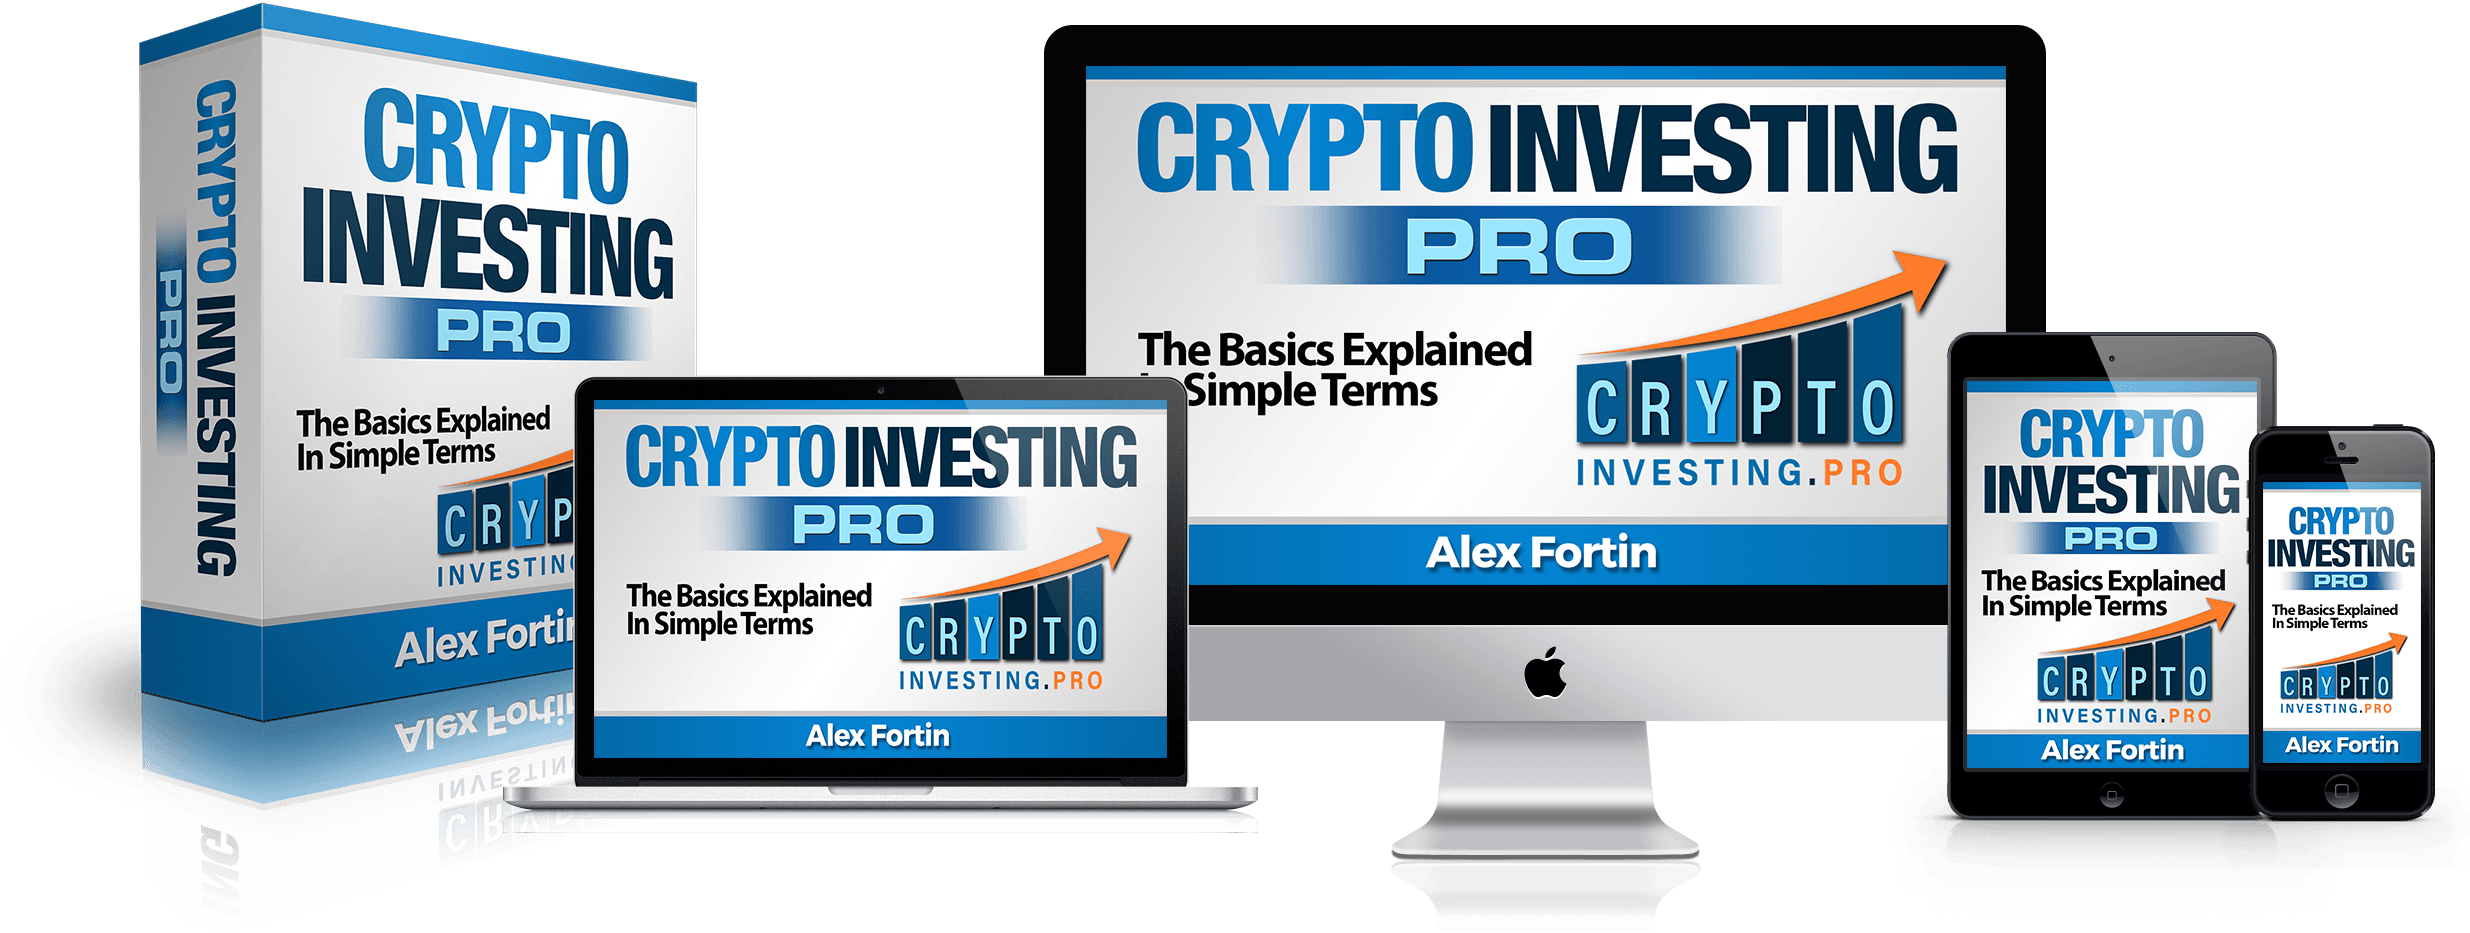 cryptocurrency investing is not